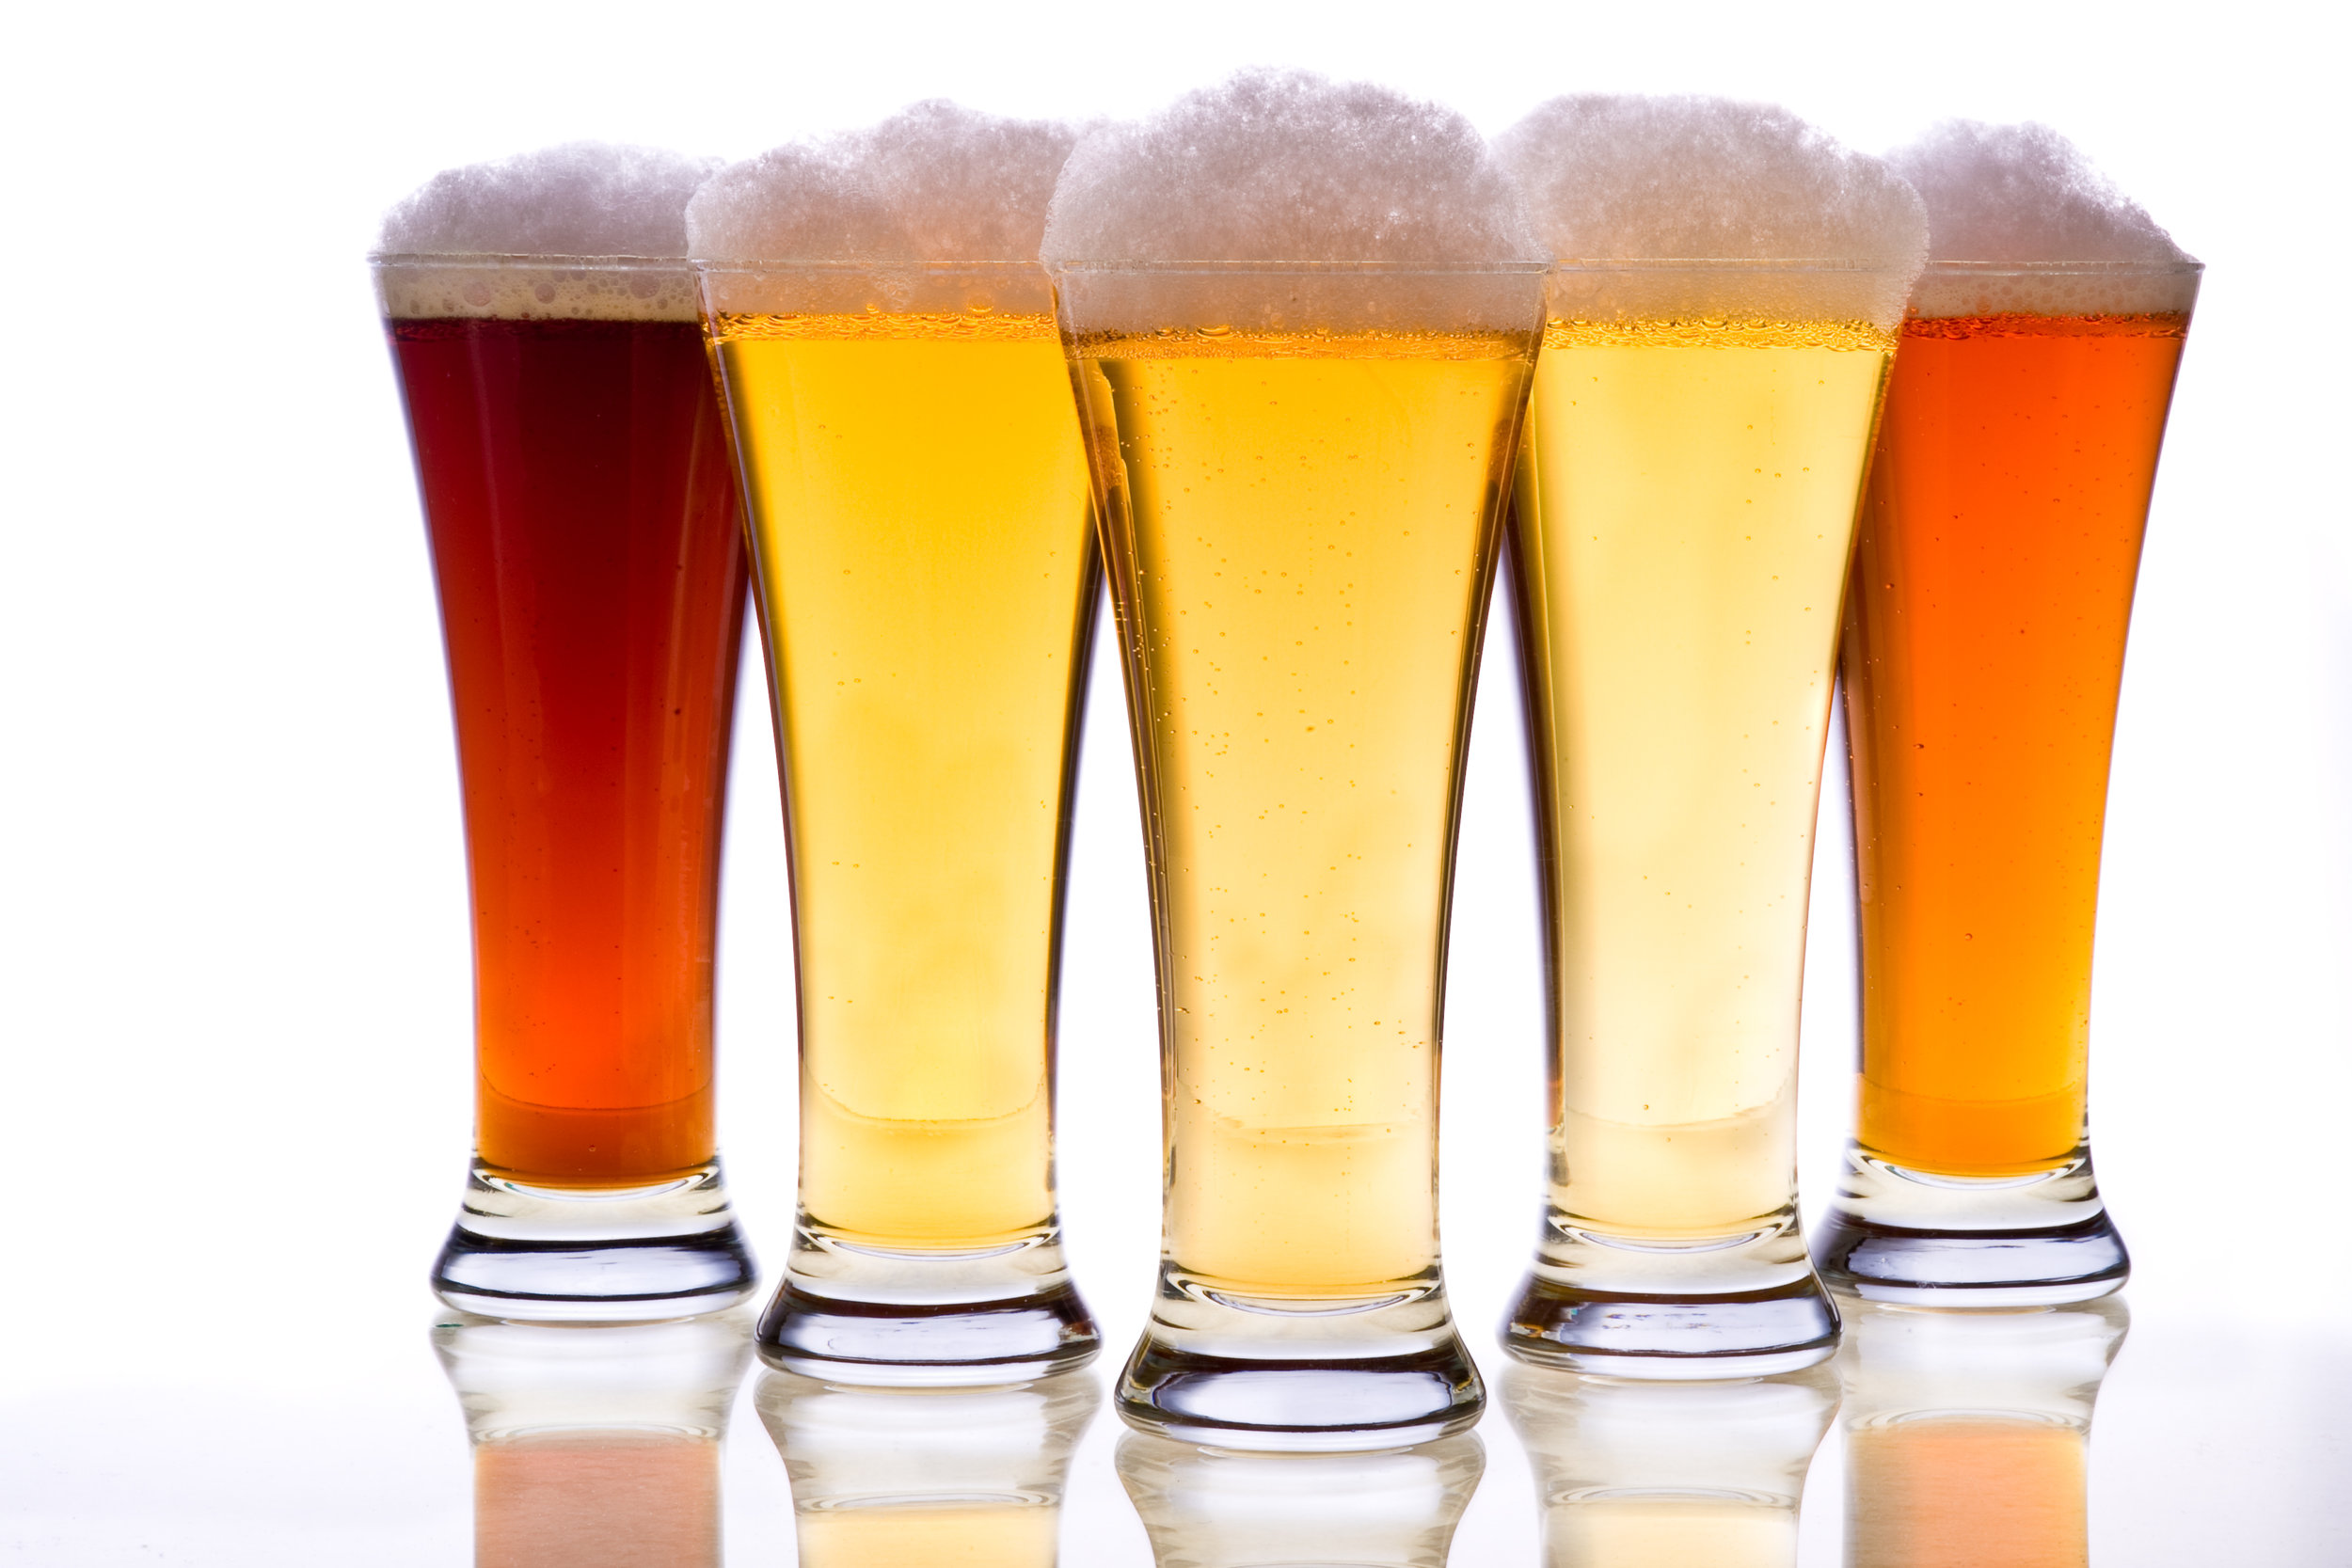 Beer - because science would be too hard to learn any other way